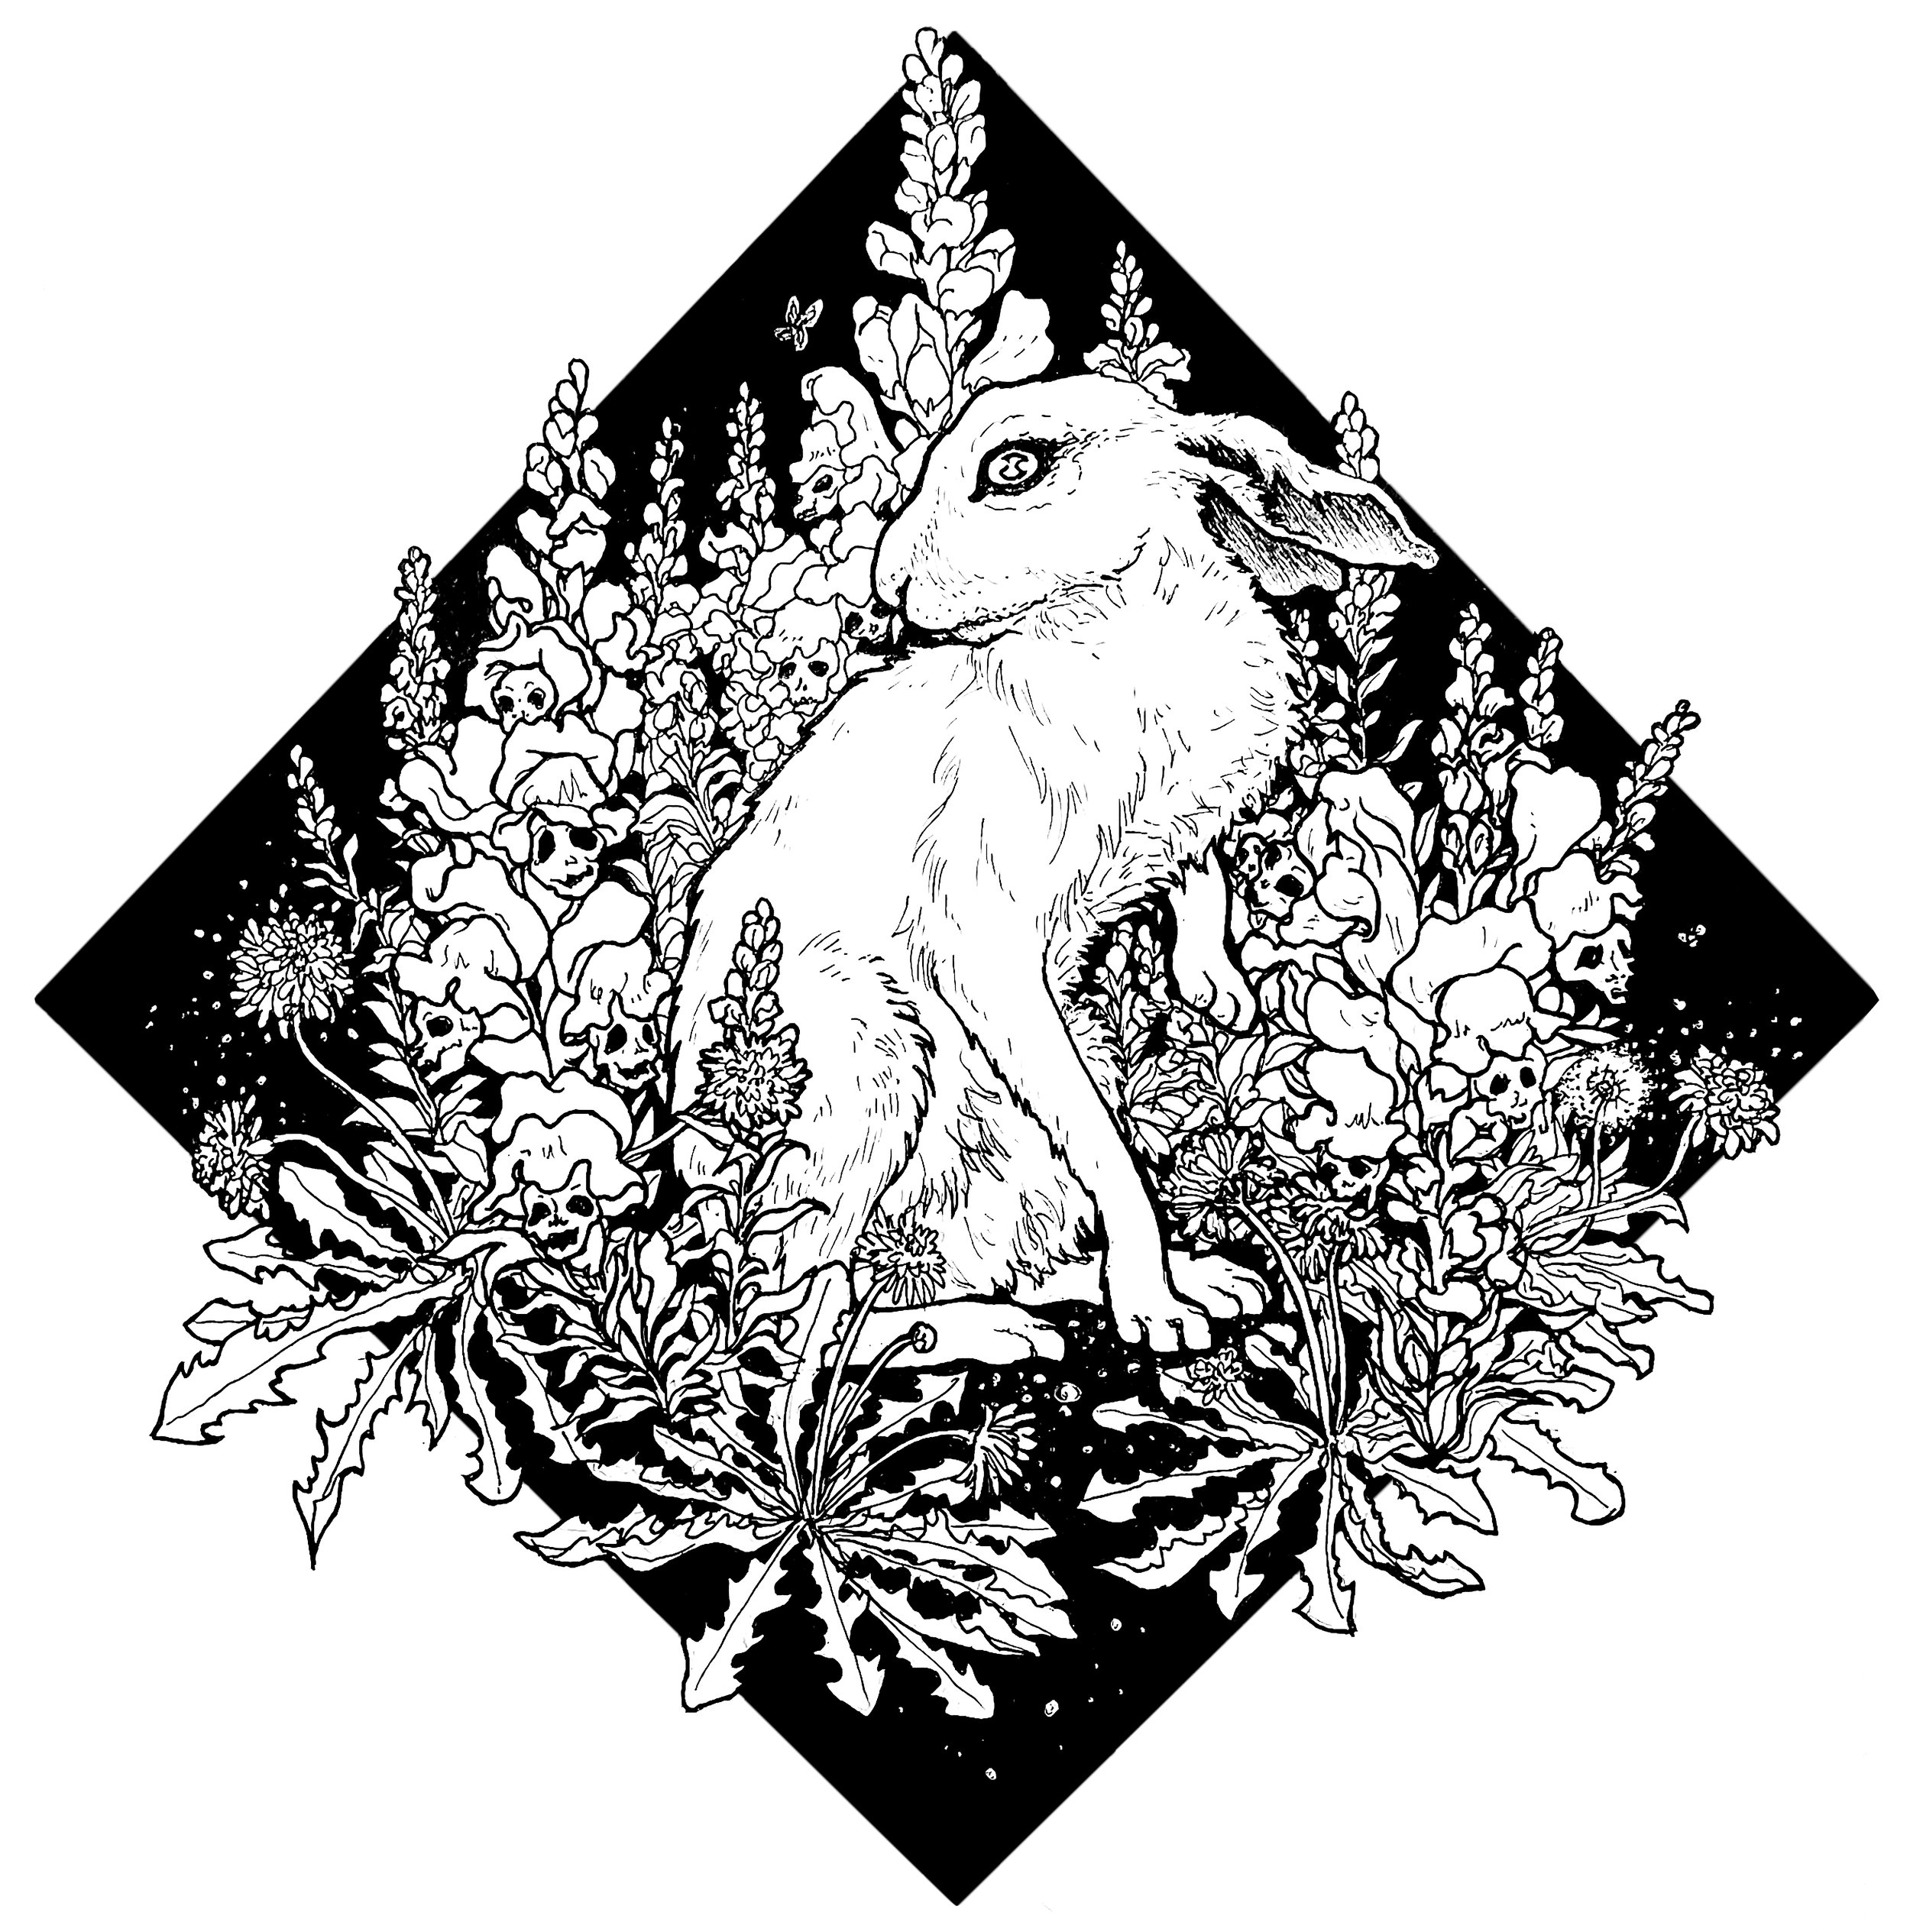 Snapdragon and the Hare